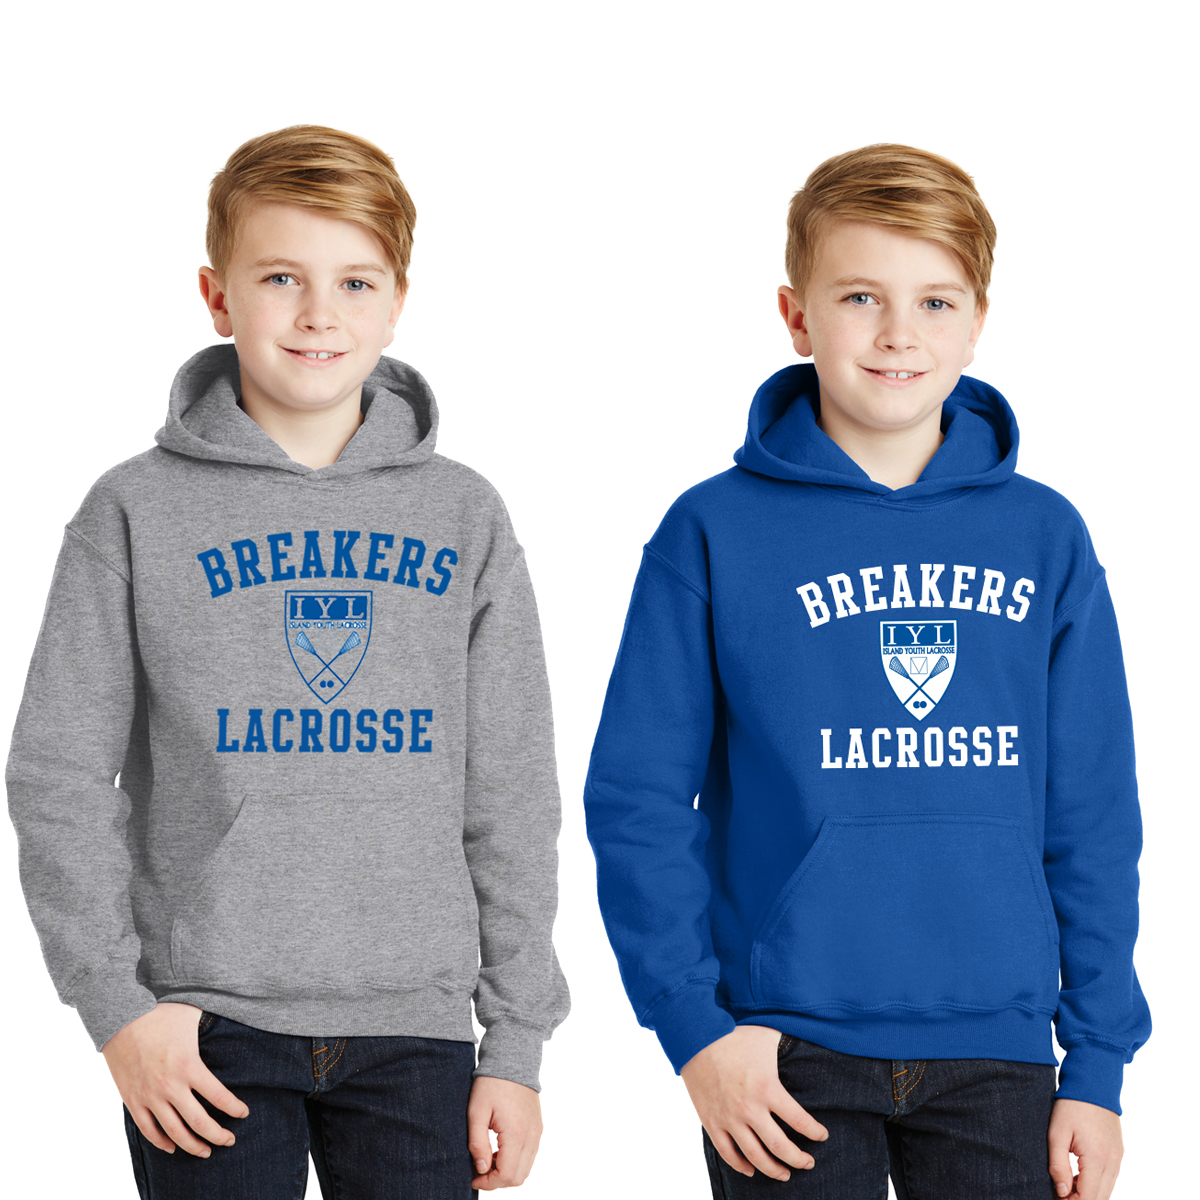 ISLAND YOUTH LACROSSE YOUTH HEAVYWEIGHT HOODY